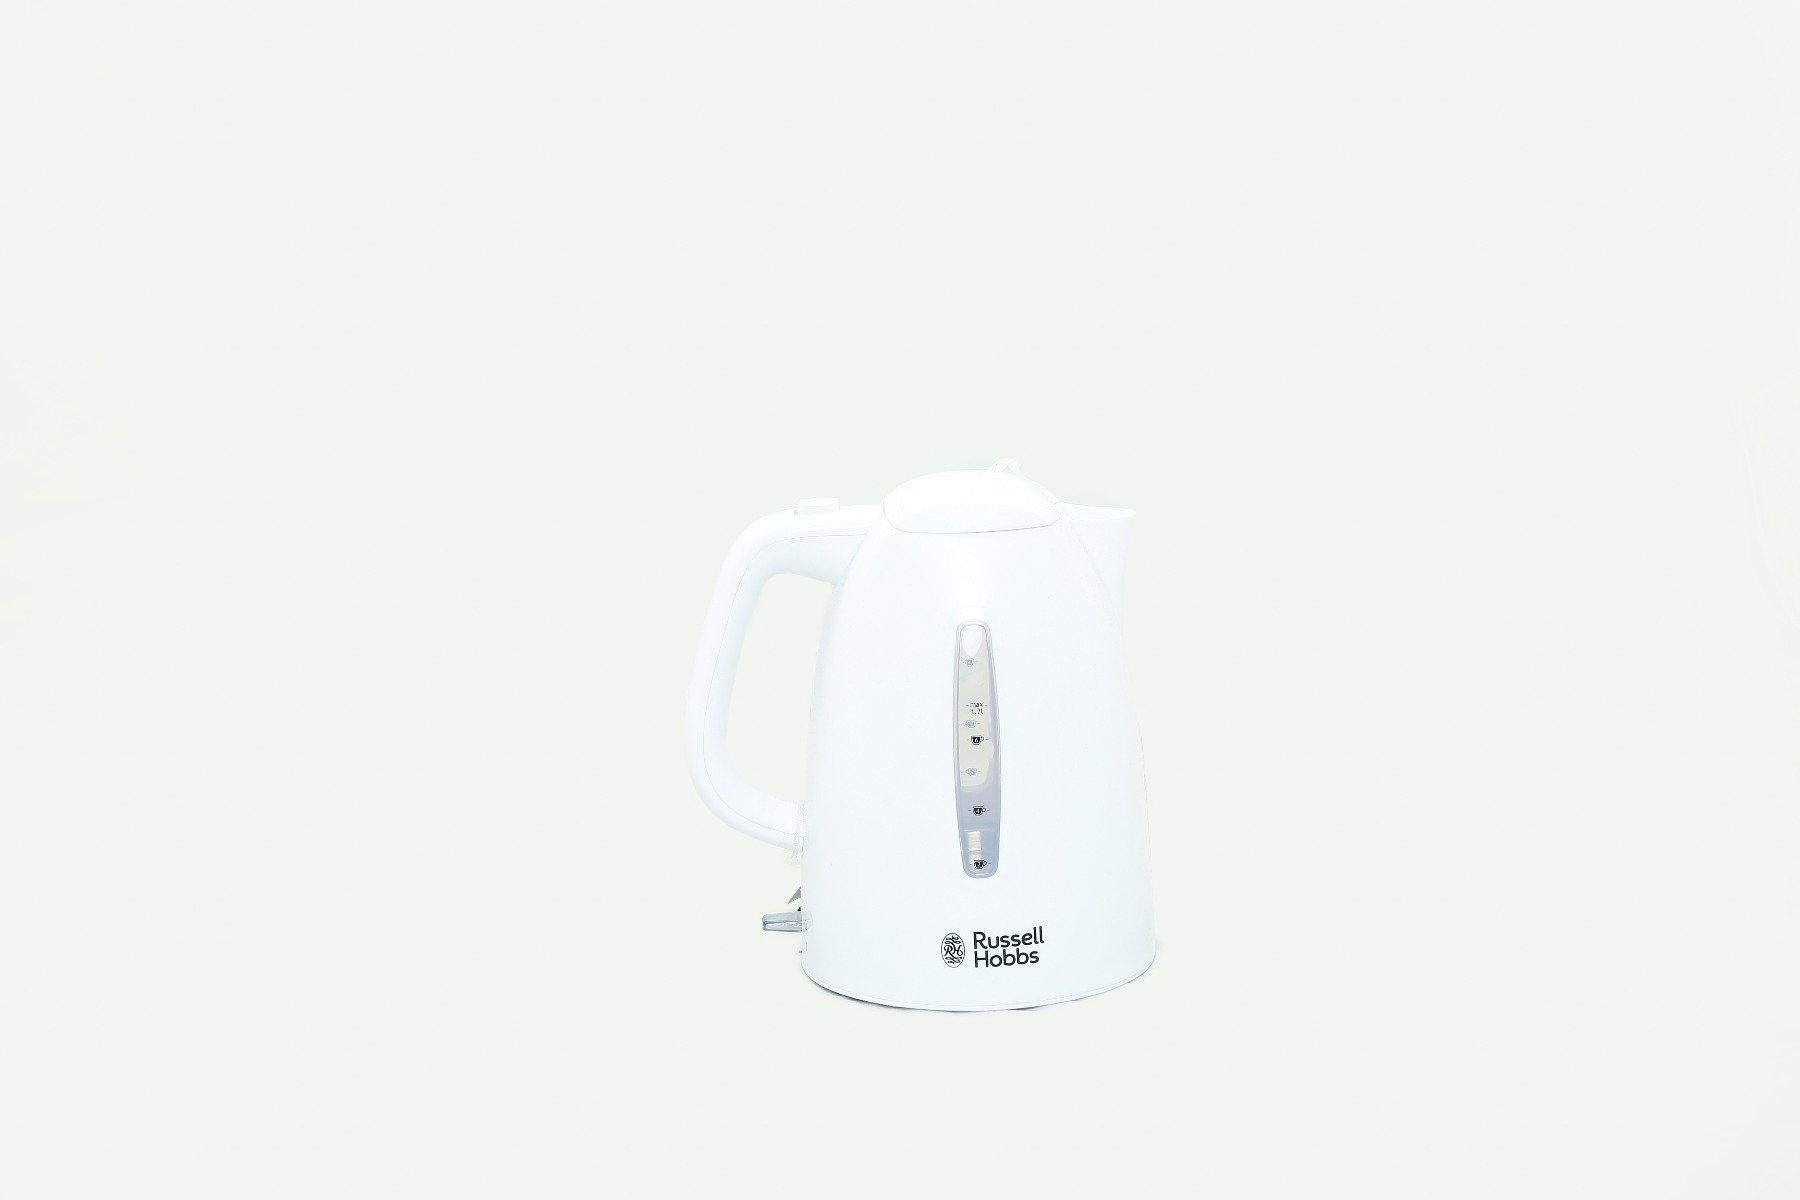 Russell Hoobs Textures White Kettle